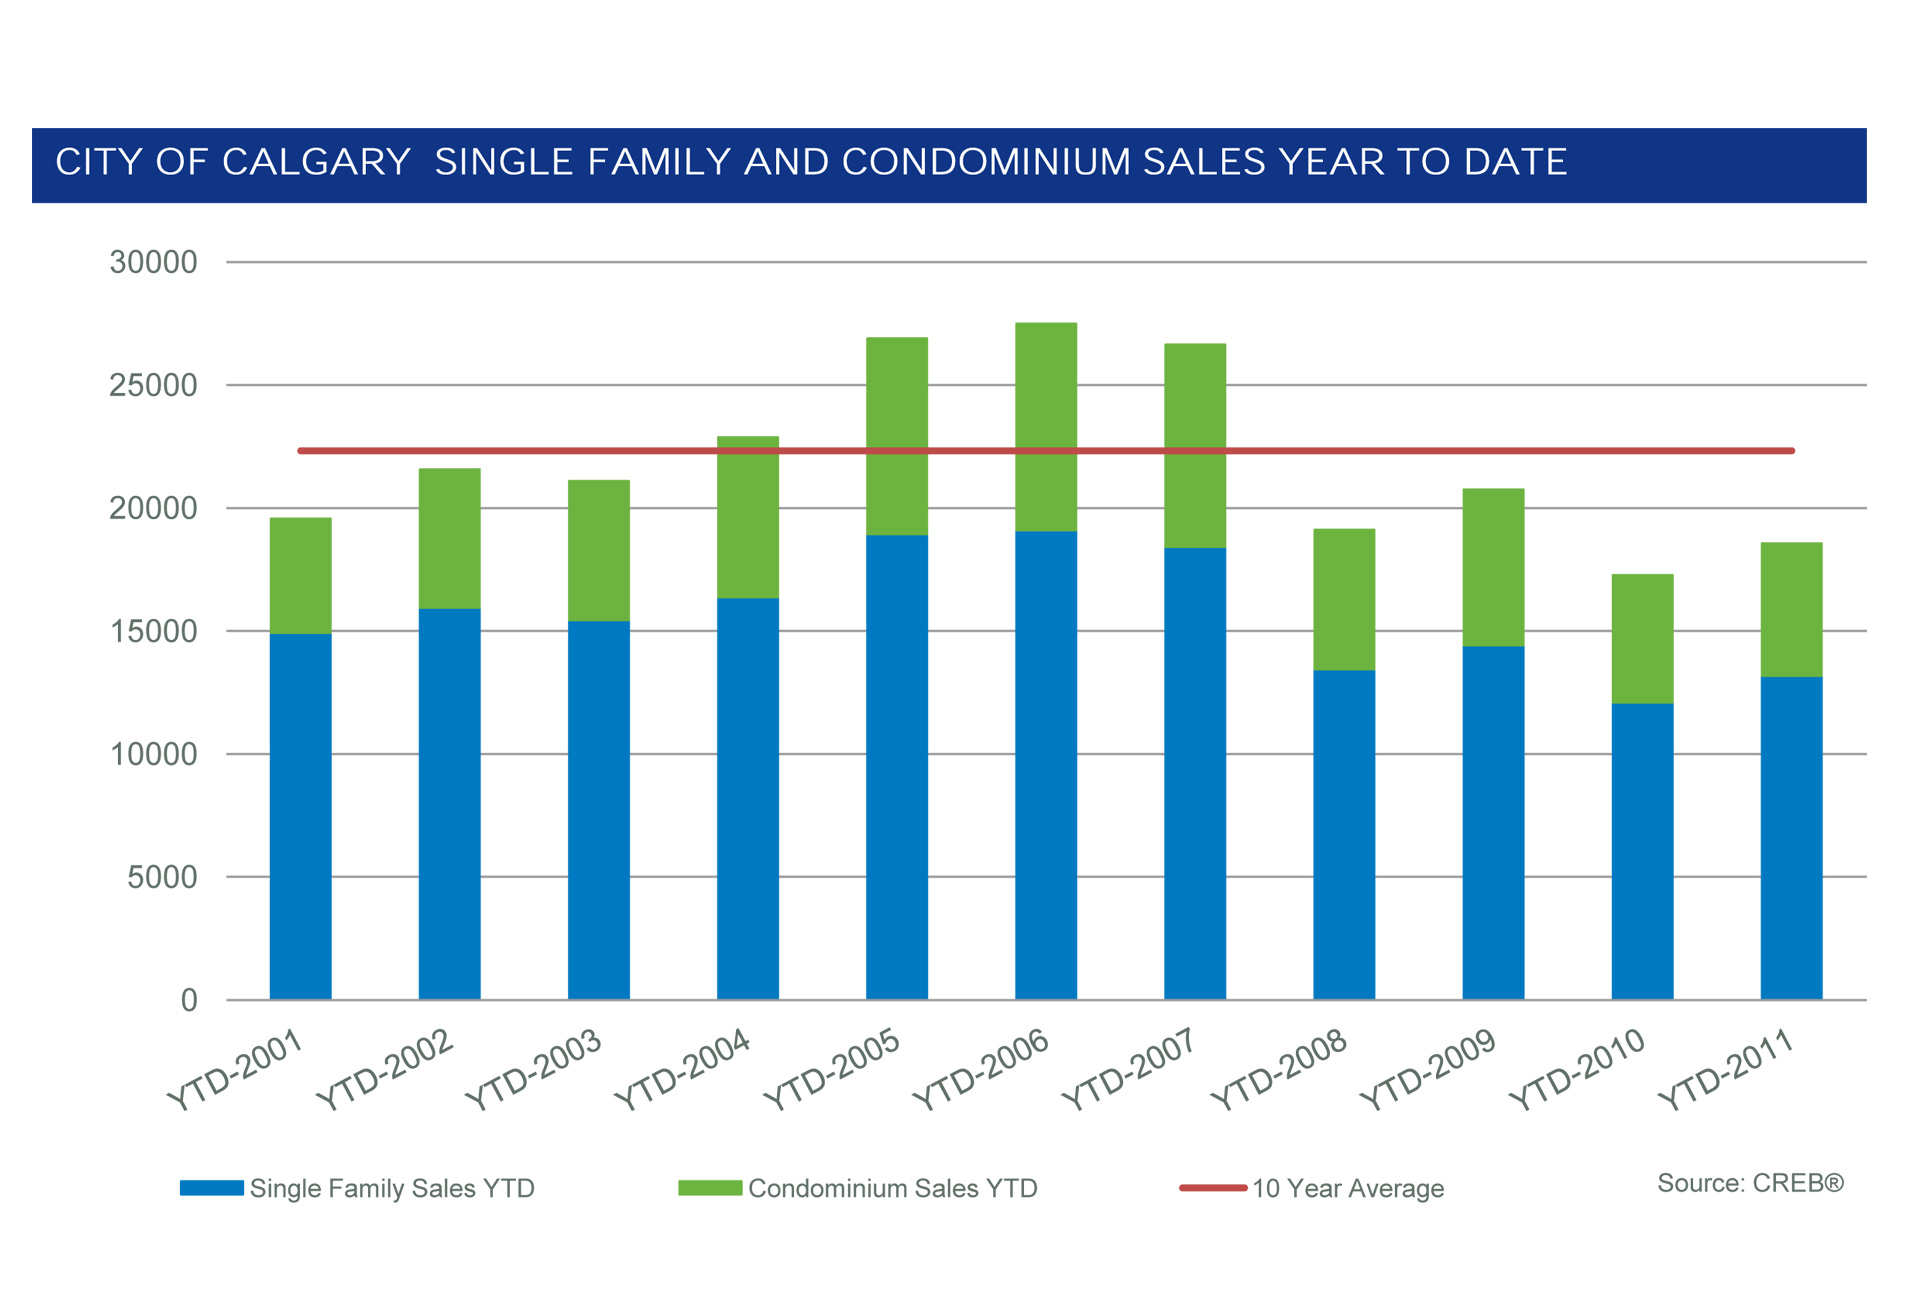 City of Calgary Home Sales Year-to-Date